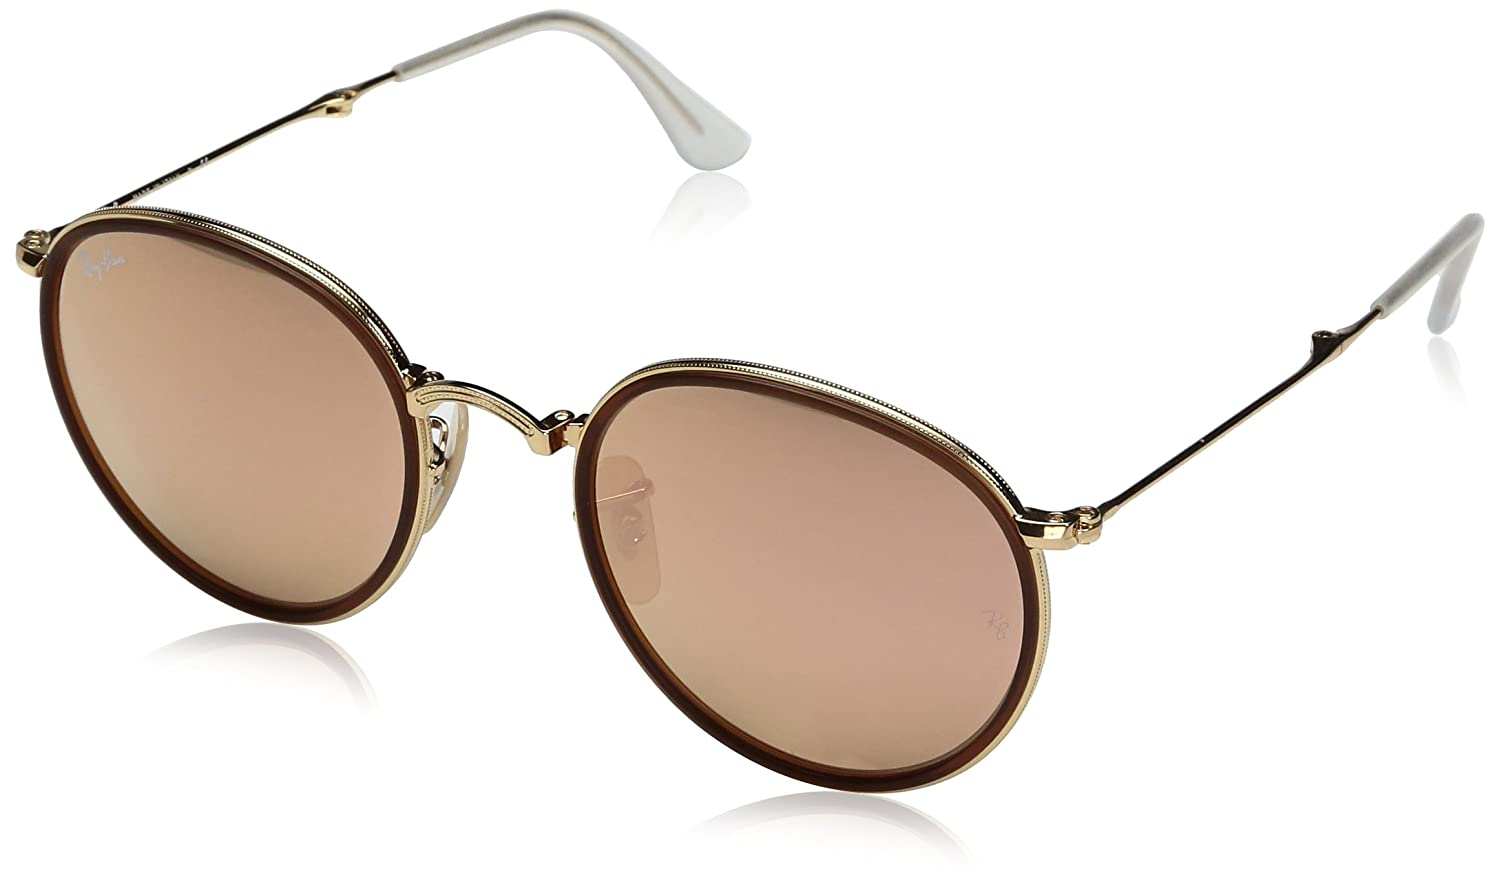 TALLA 51. Ray-Ban Sonnenbrille ROUND (RB 3517)